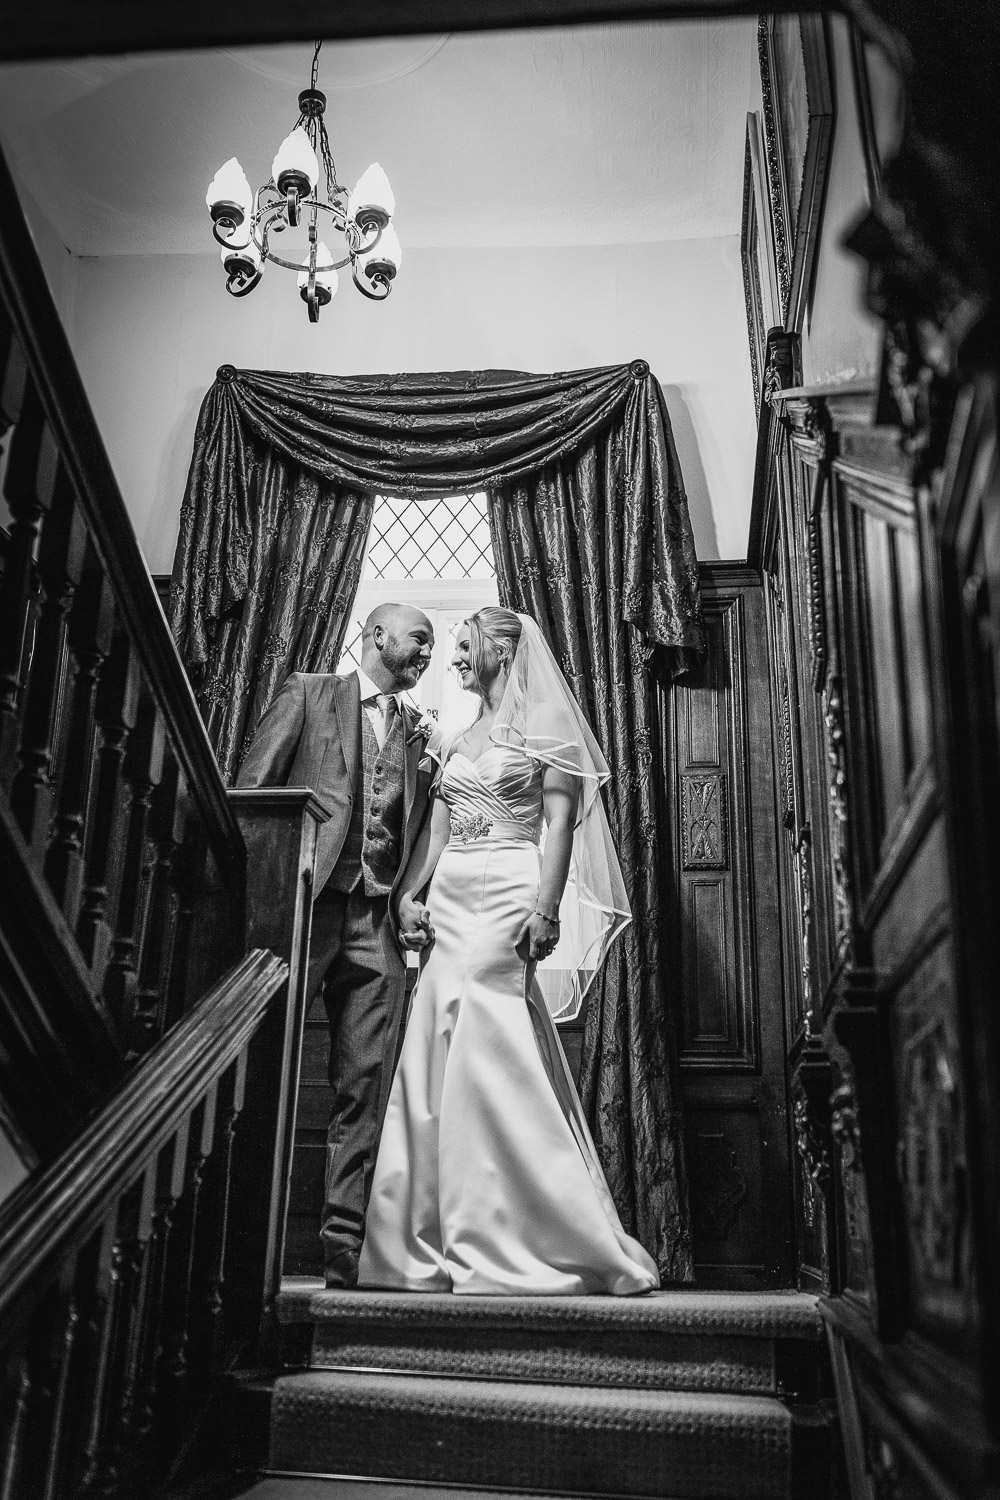 Leanne-and-Mark-Wedding-Highlights-66.jpg